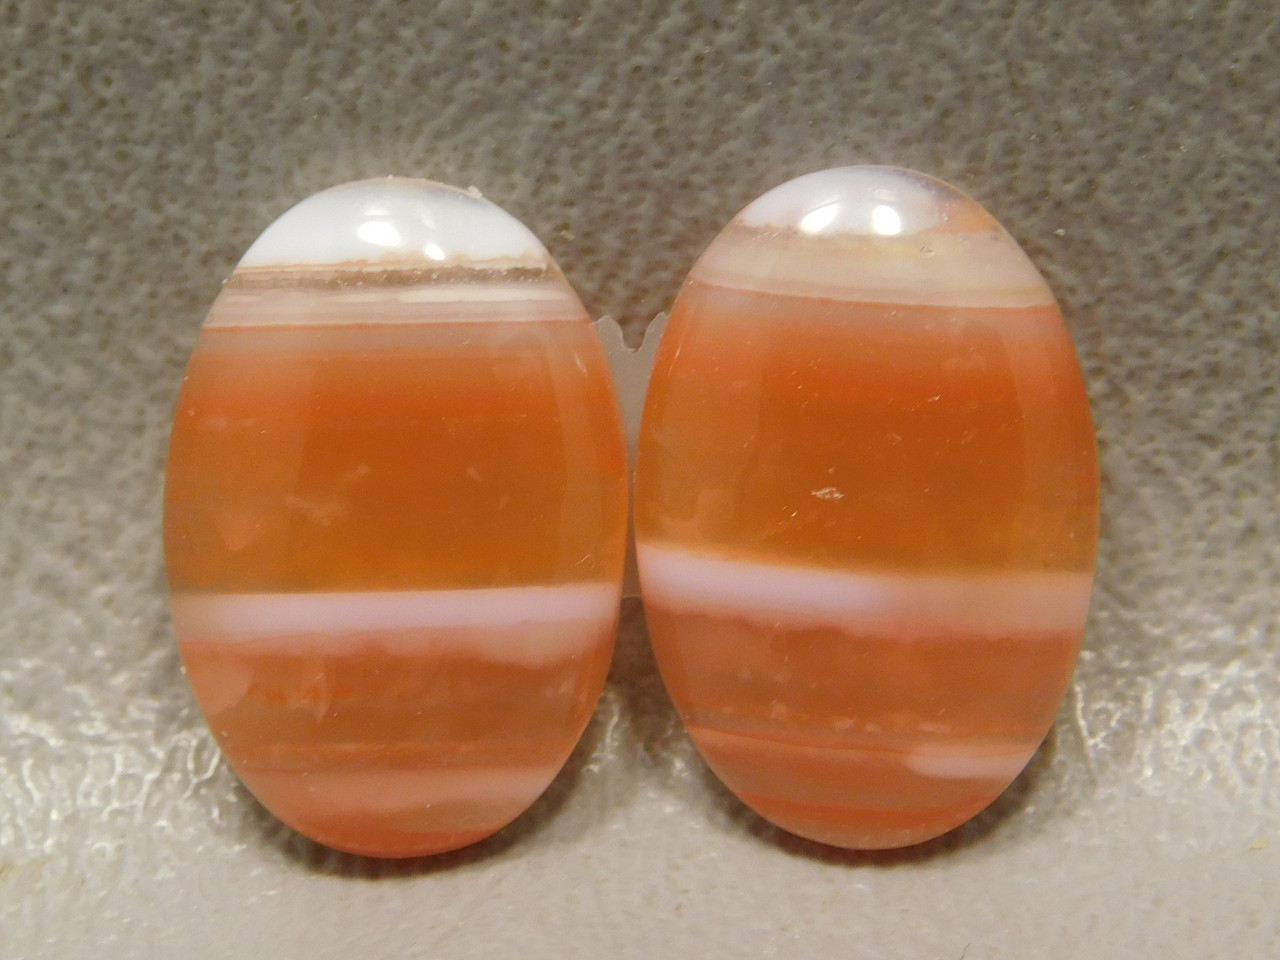 Stone Cabochons Orange White Striped Carnelian Agate Matched Pair #2